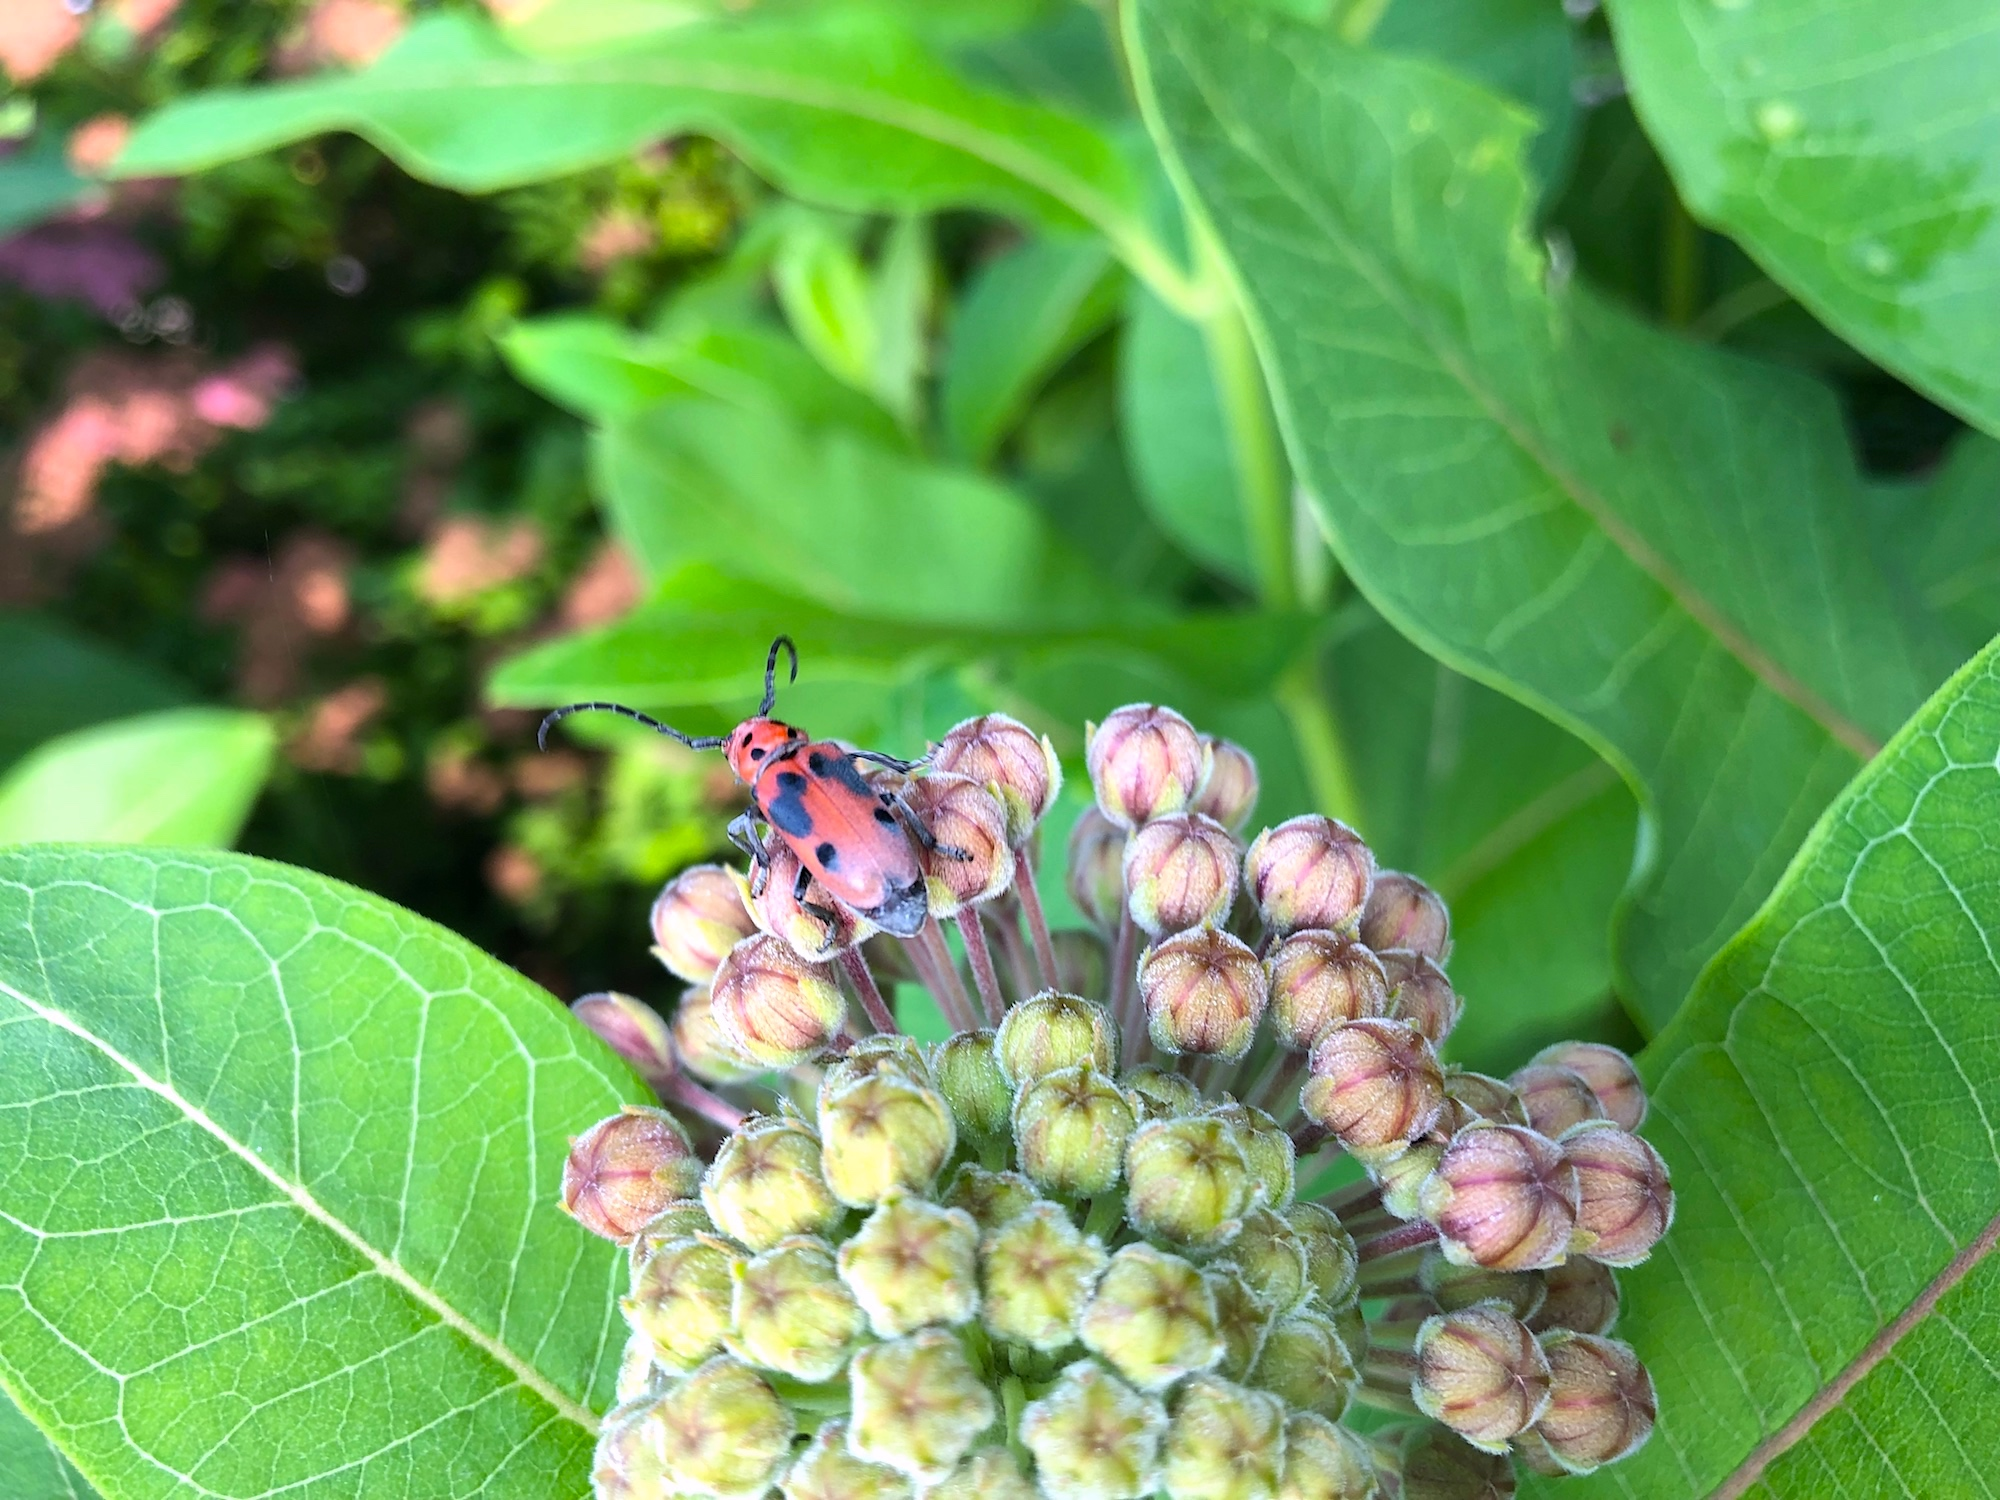 Common Milkweed with Goldenrod Soldier Beetle by Lake Wingra Boat House on June 30, 2019.